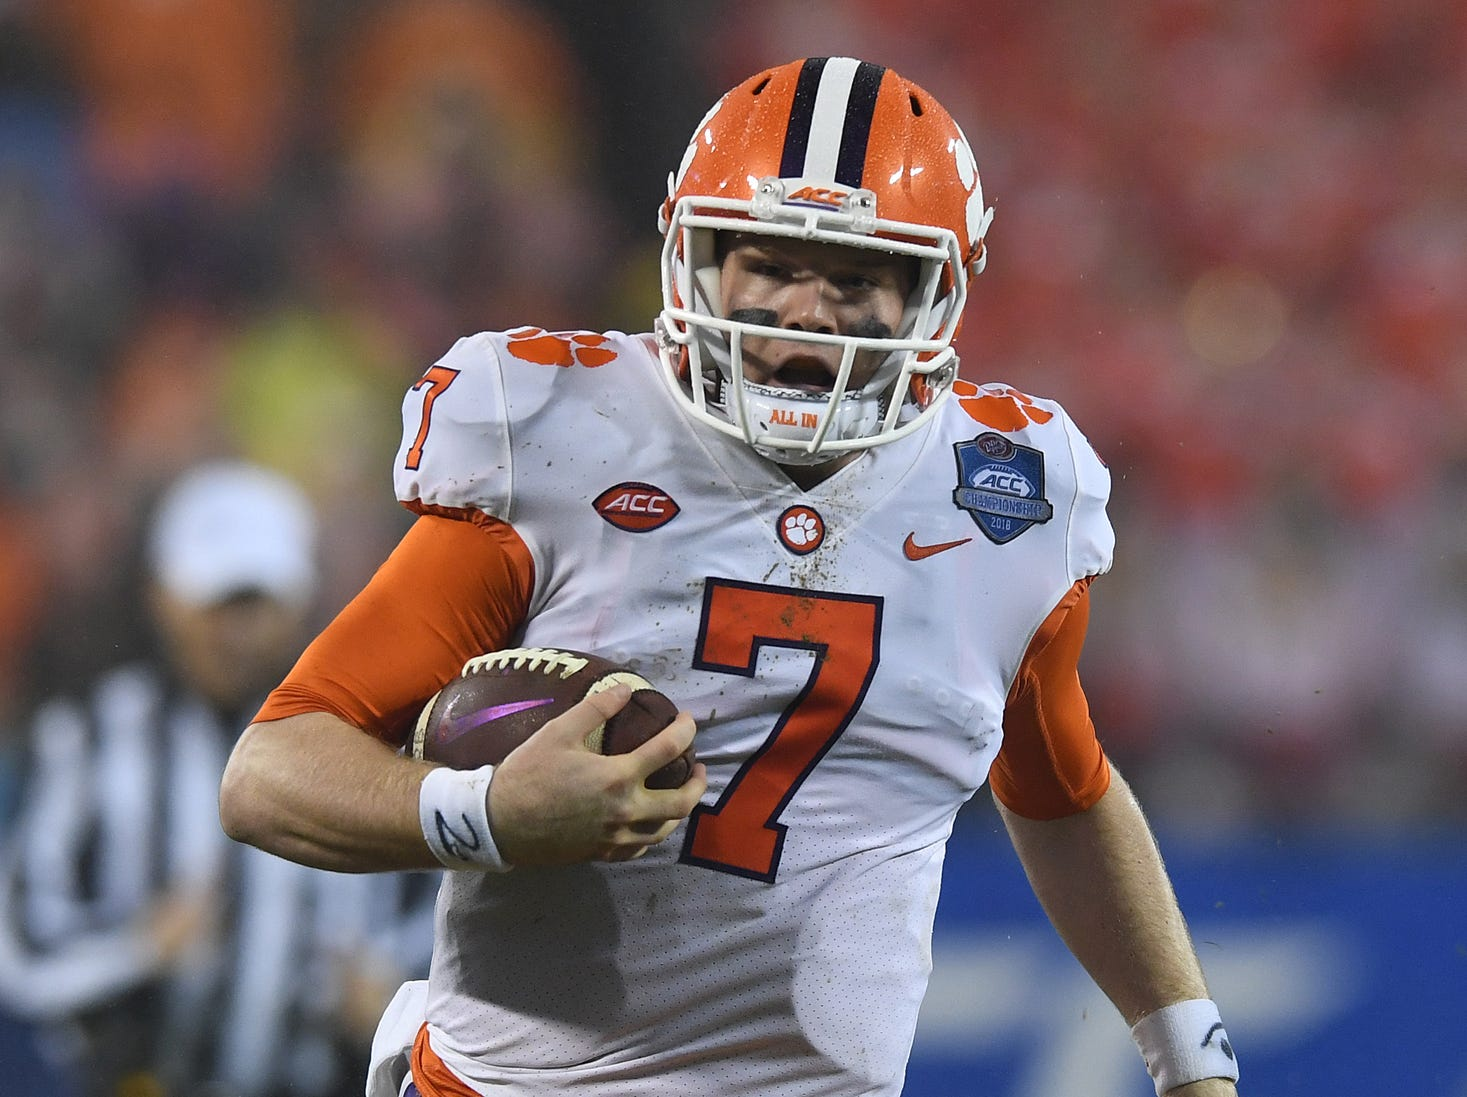 Clemson quarterback Chase Brice (7) scrambles for yardage against Pittsburgh during the 4th quarter of the Dr. Pepper ACC Championship at Bank of America Stadium in Charlotte, N.C. Saturday, December 1, 2018.